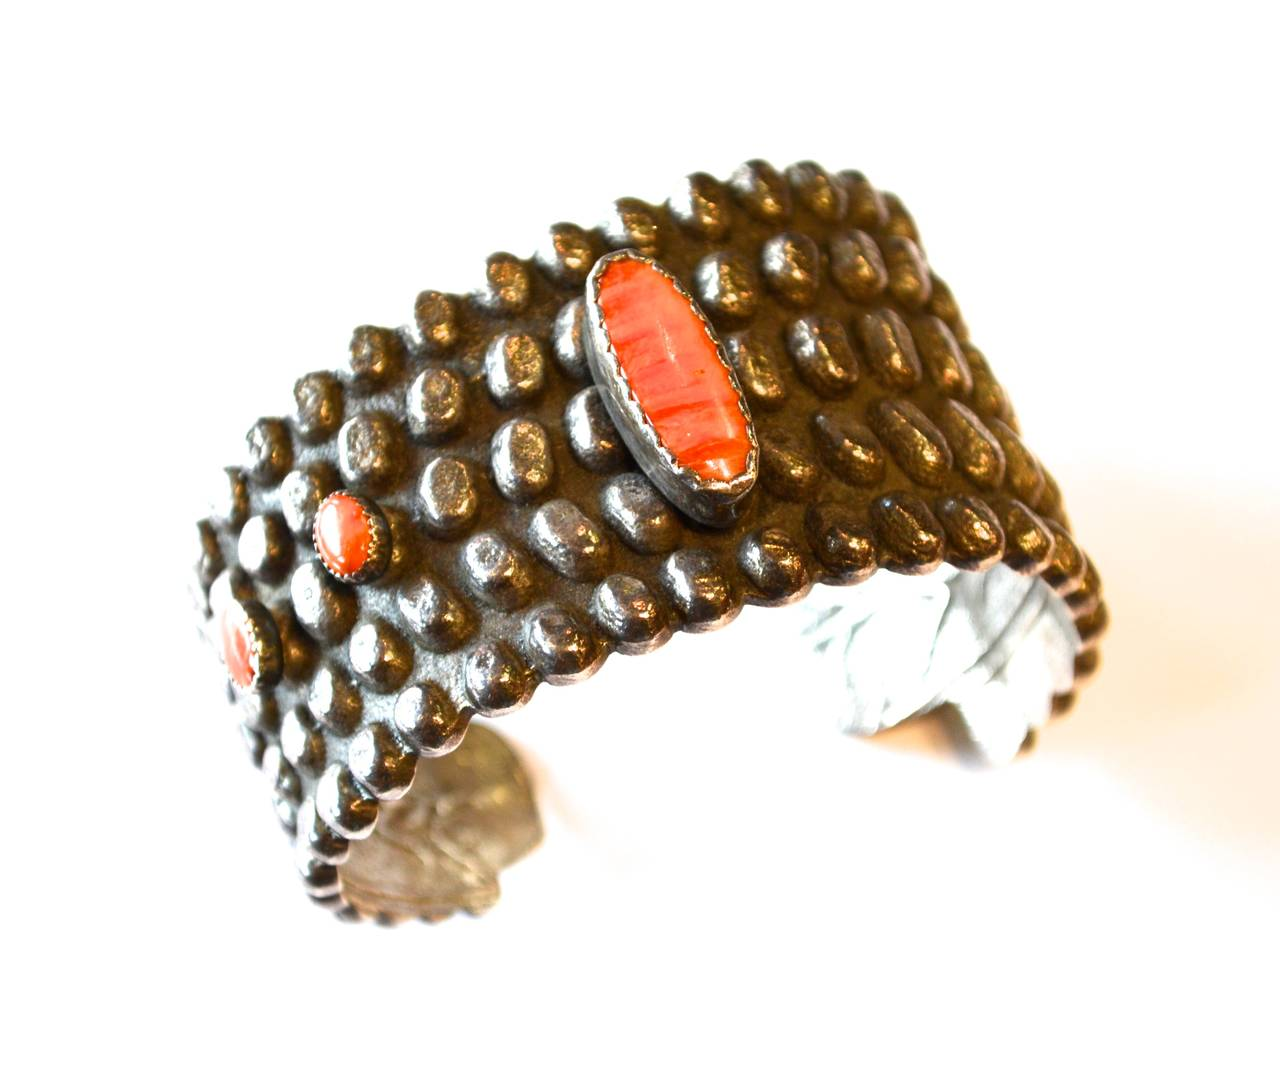 Wonderful signed Anthony Lovato coral cuff. Anthony is a master Santo Domingo Pueblo jeweler. The bracelet features a sand cast texture and beautiful coral details. As a third generation jeweler, he watched his grandfather and father work from the